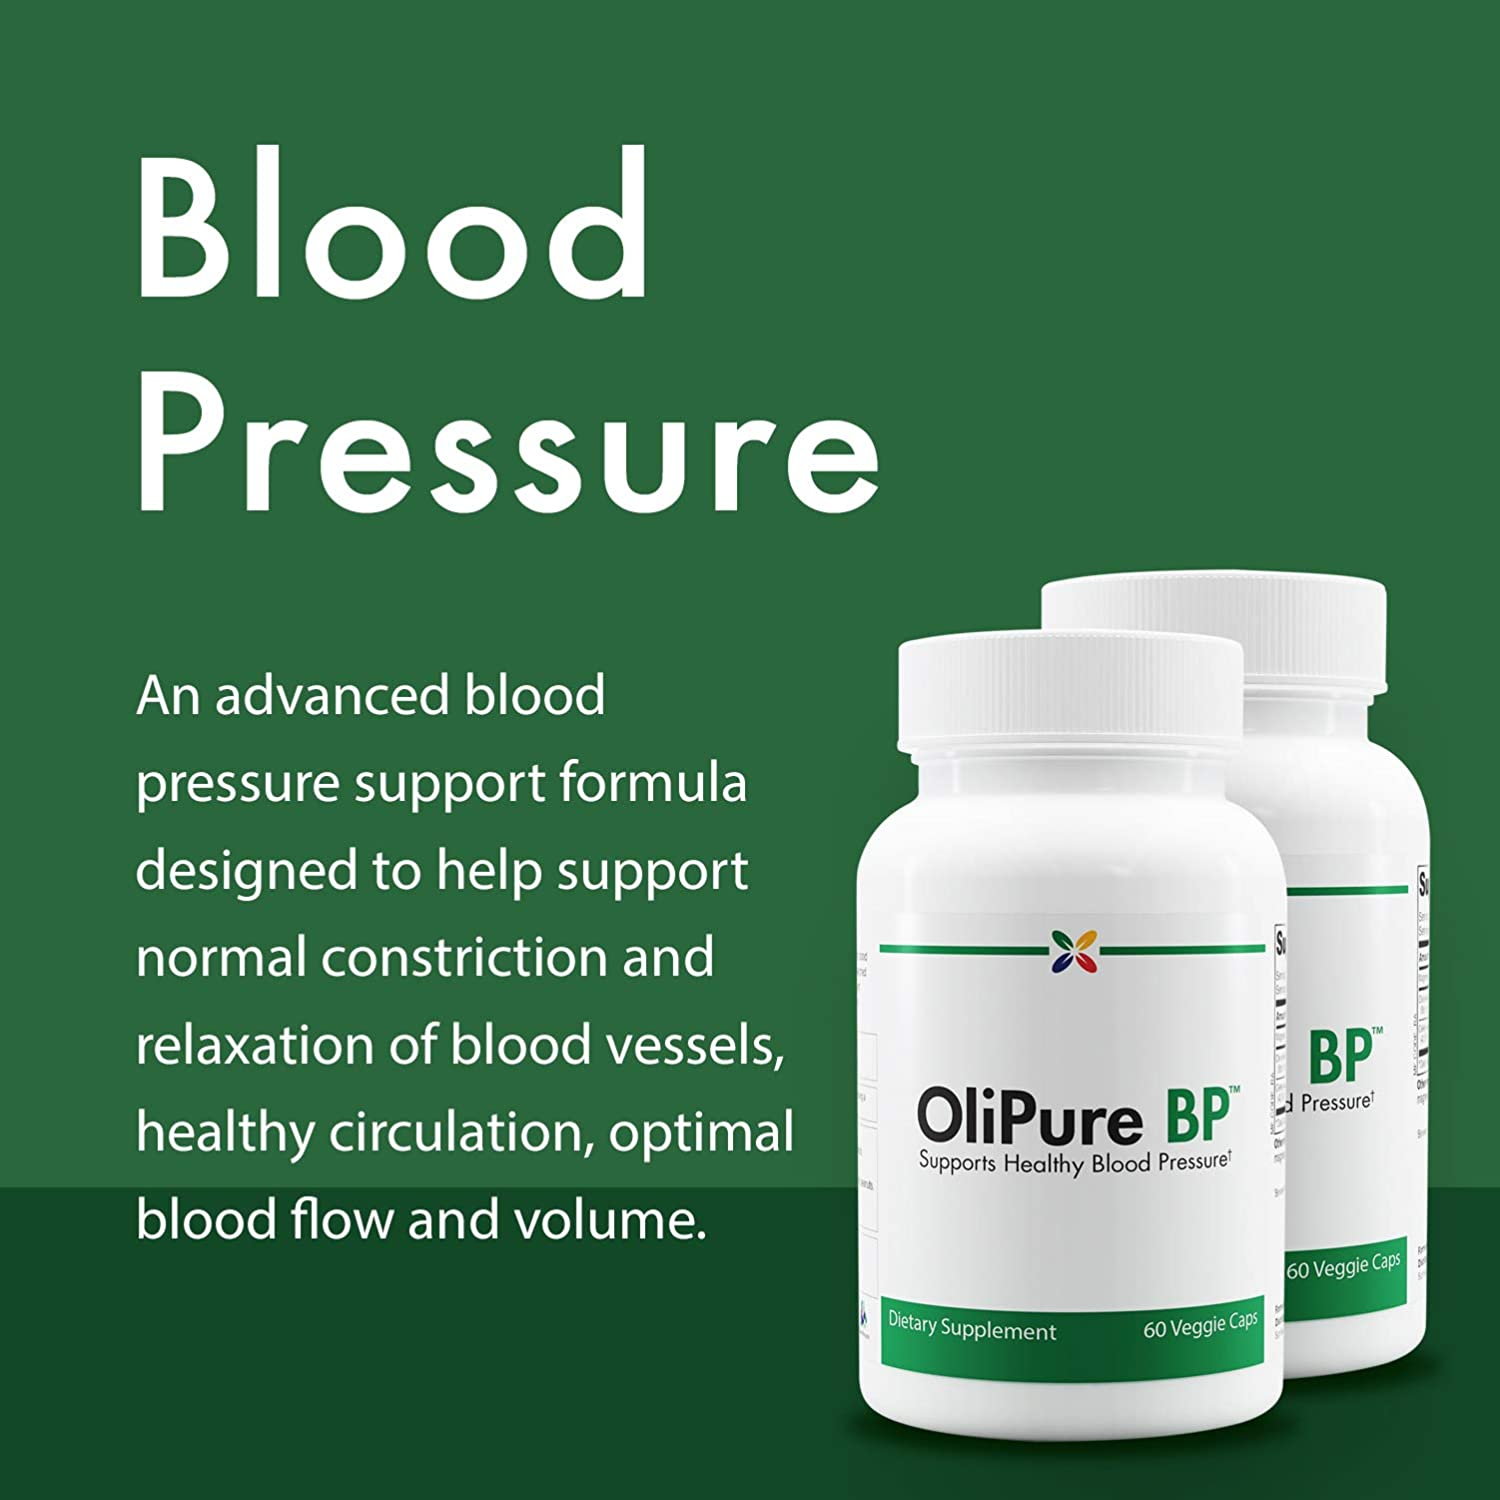 Stop Aging Now - OliPure BP™ Blood Pressure Support Formula - Ref Code  (OBPWPT) - Supports